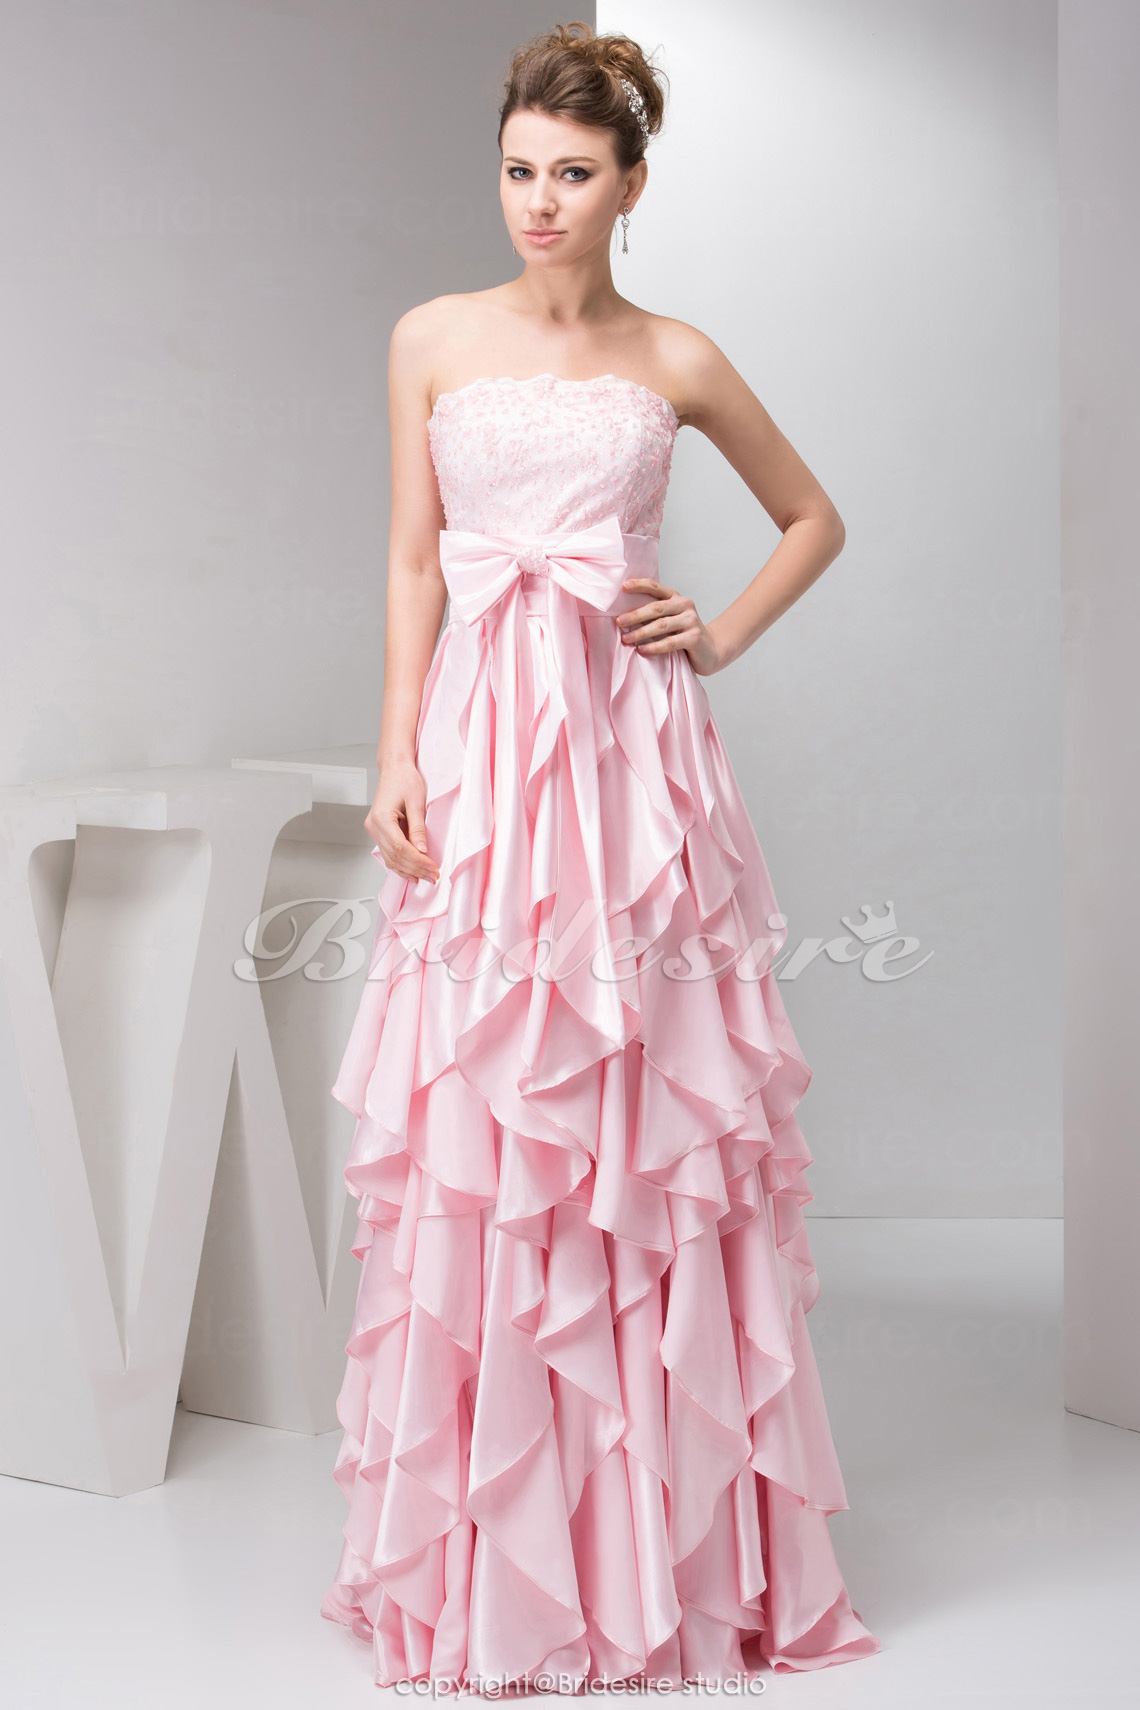 Sheath/Column Strapless Floor-length Sleeveless Stretch Satin Dr